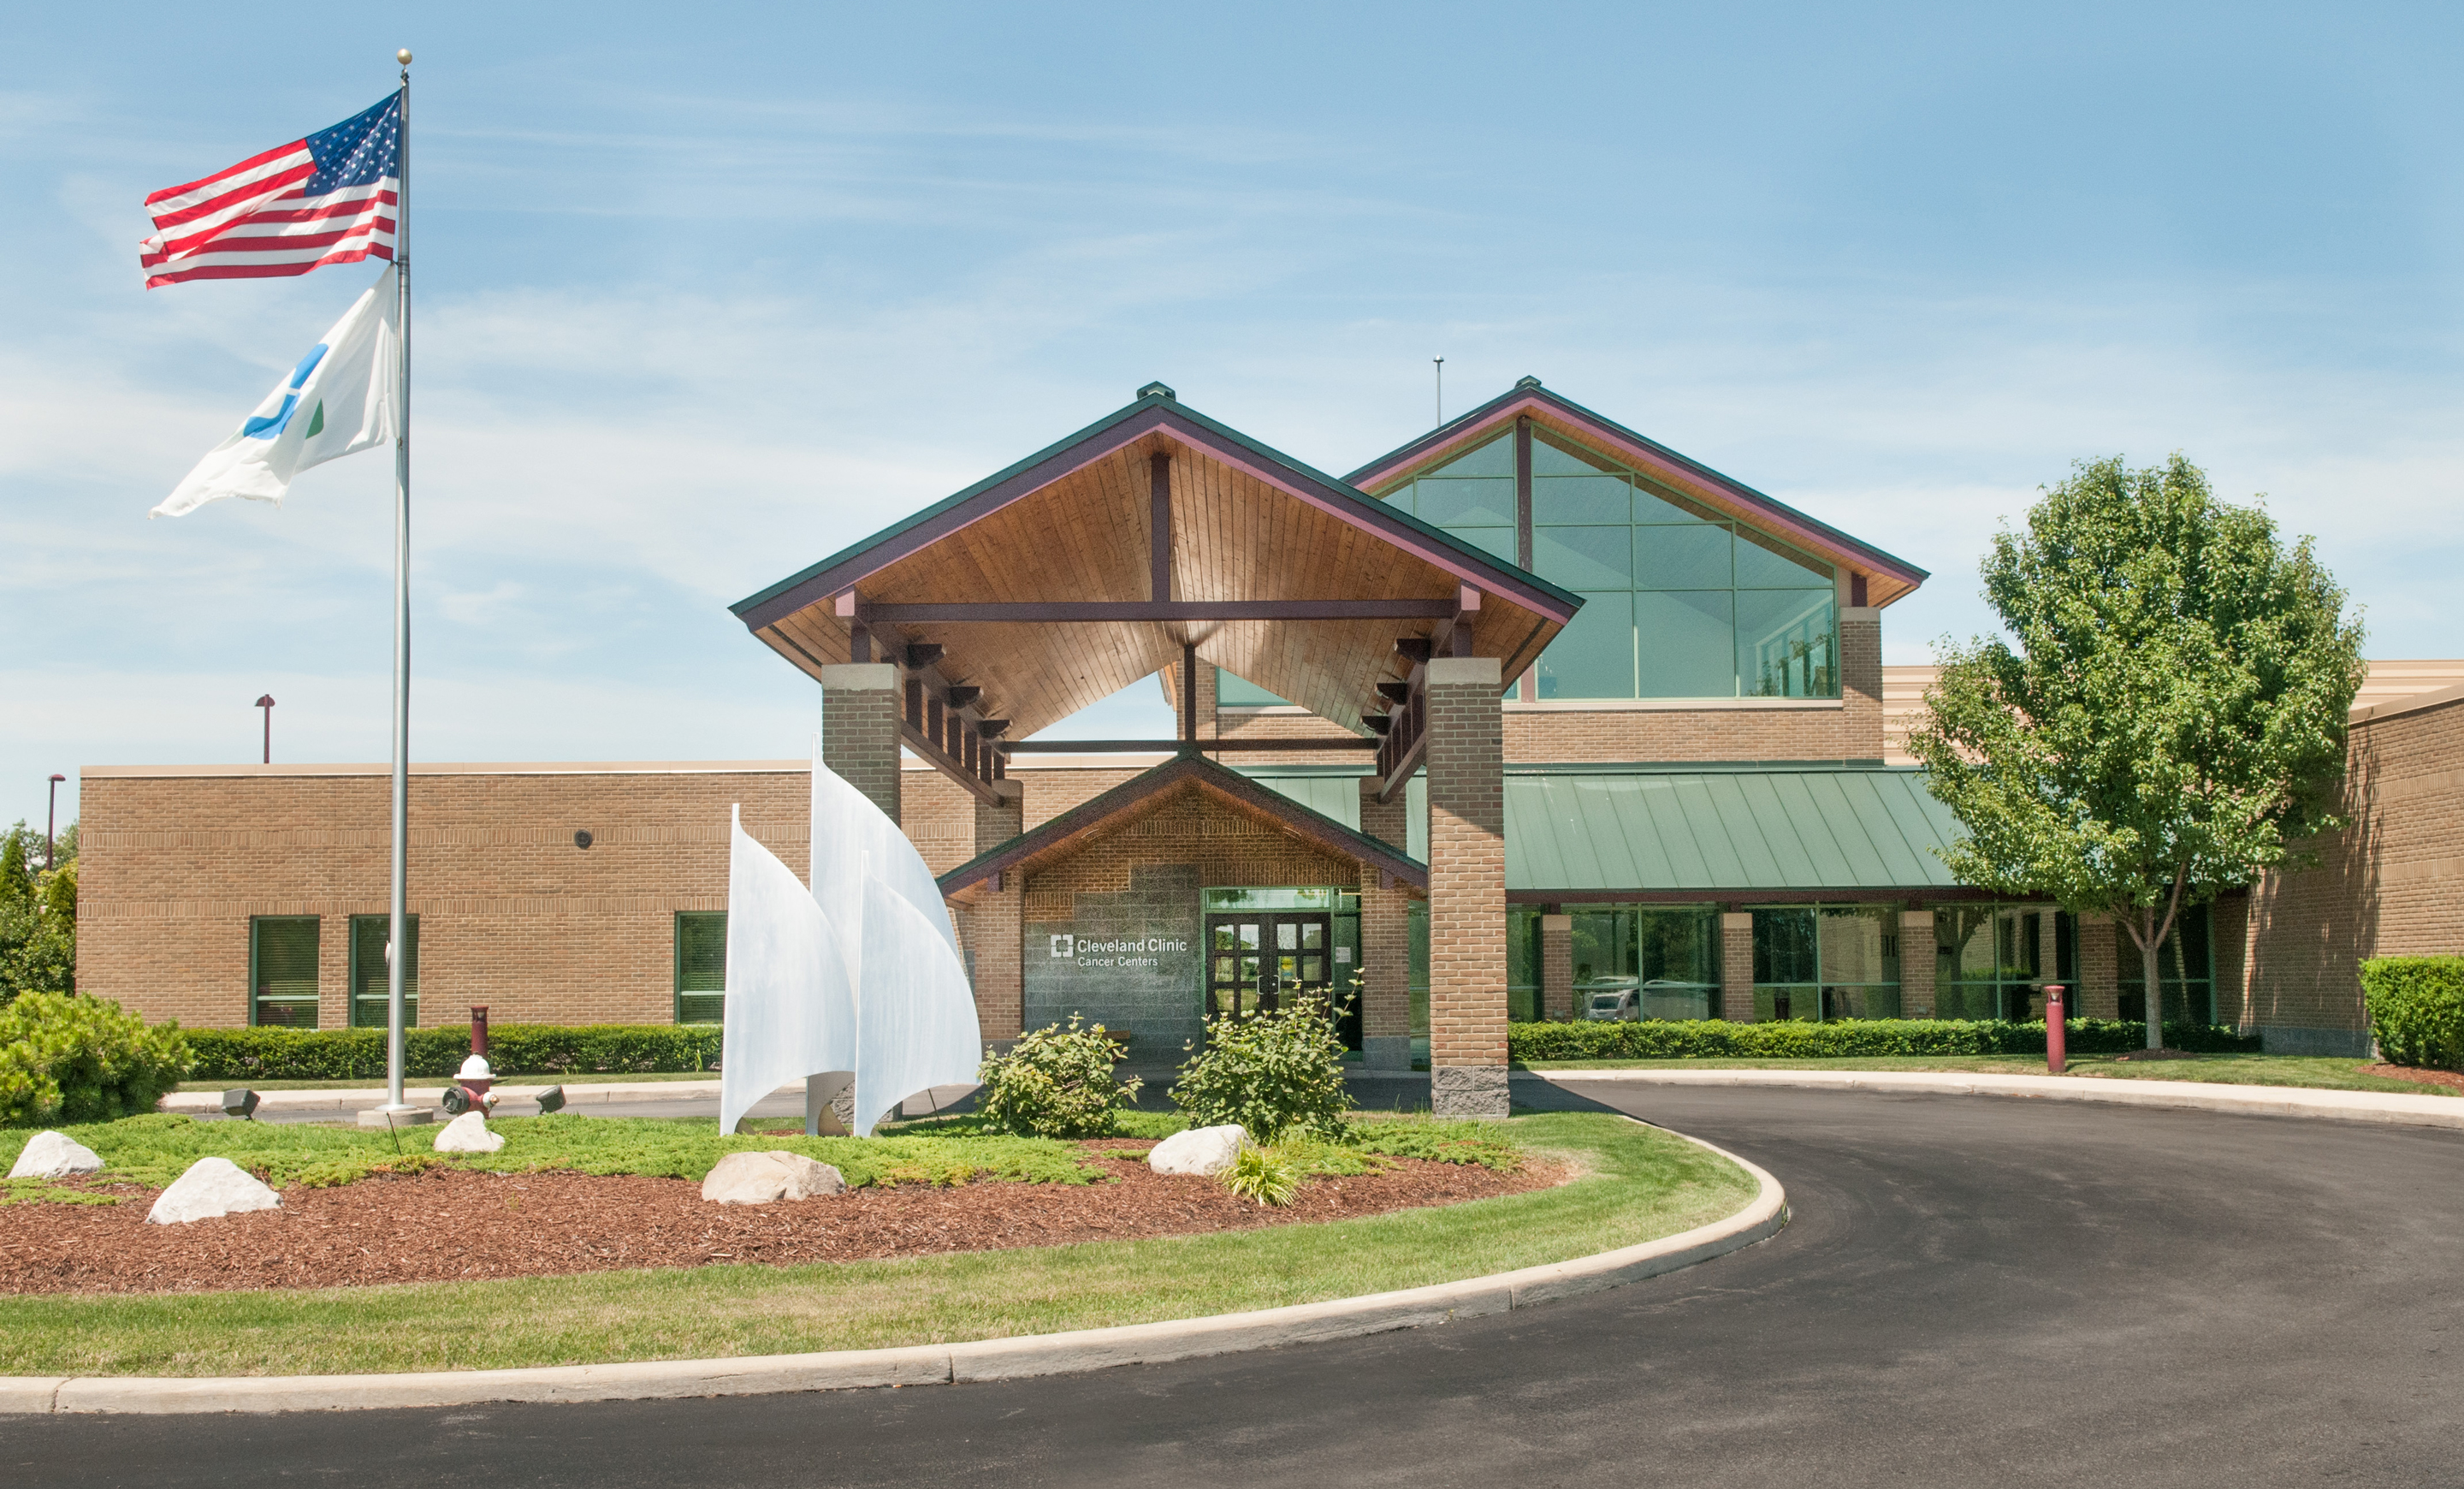 Cancer Center, Sandusky